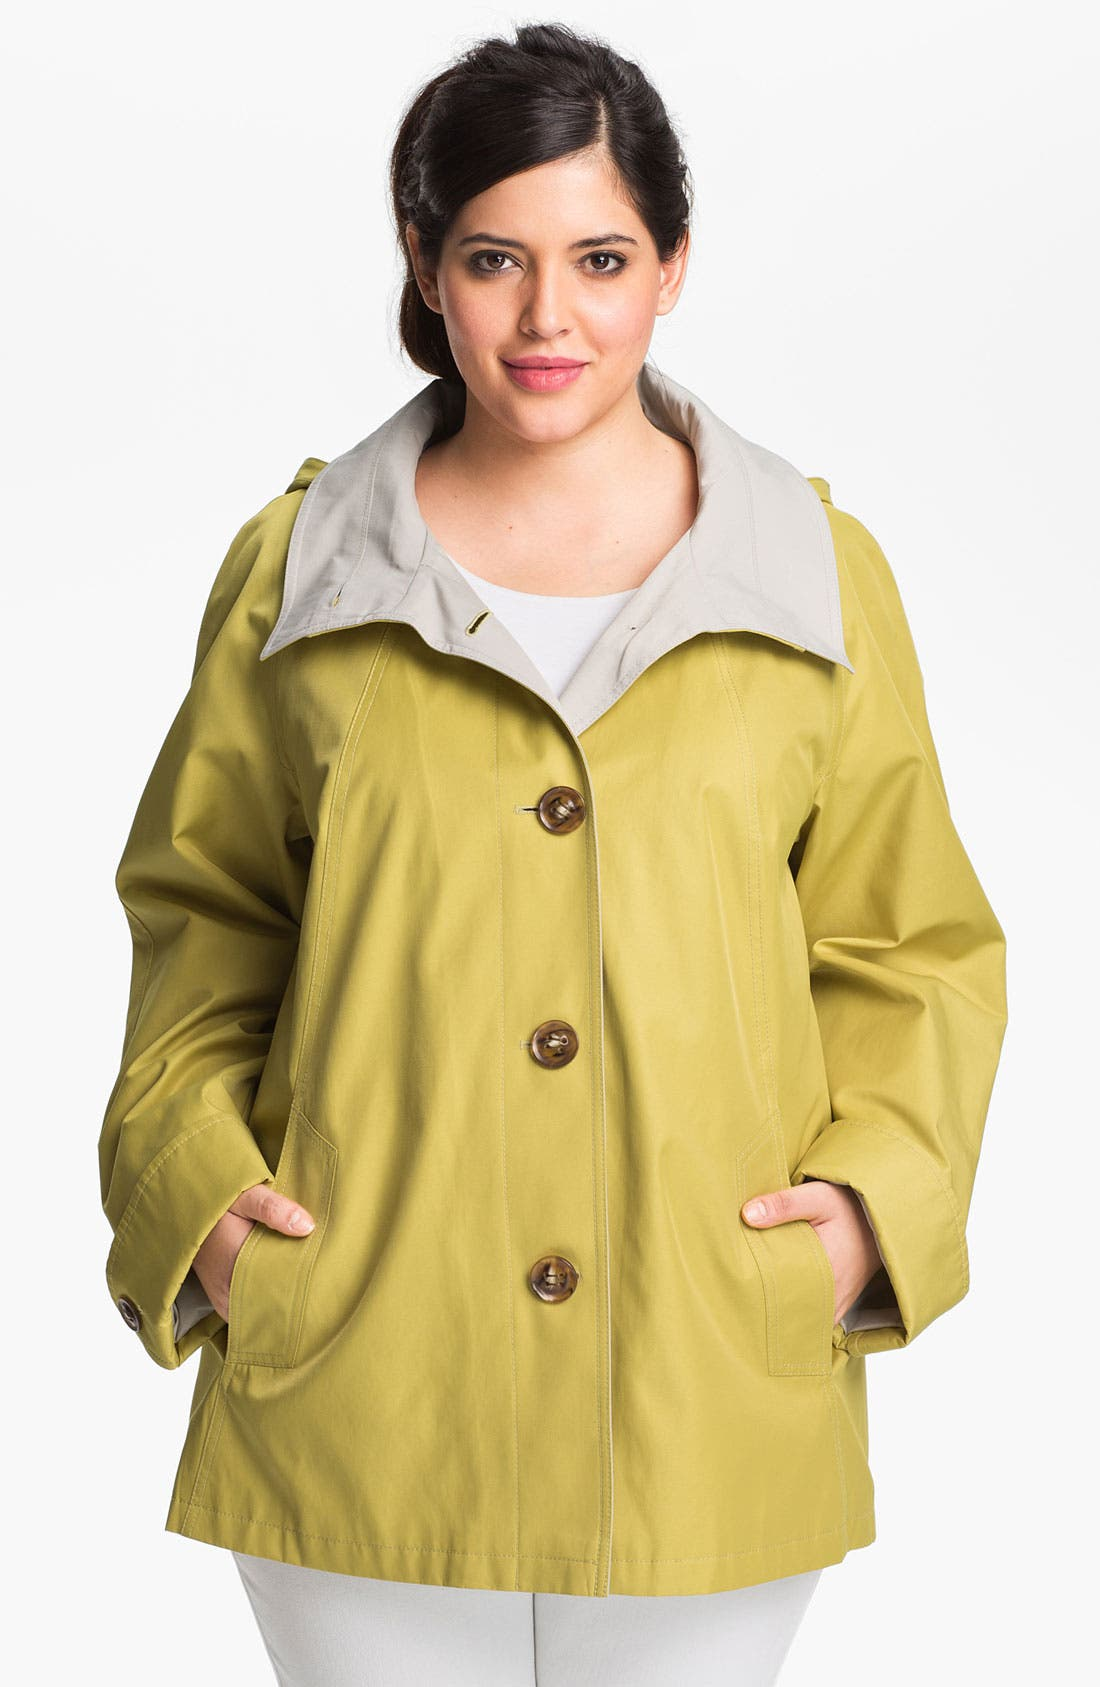 Alternate Image 1 Selected - Gallery Short A-Line Jacket with Detachable Hood (Plus)